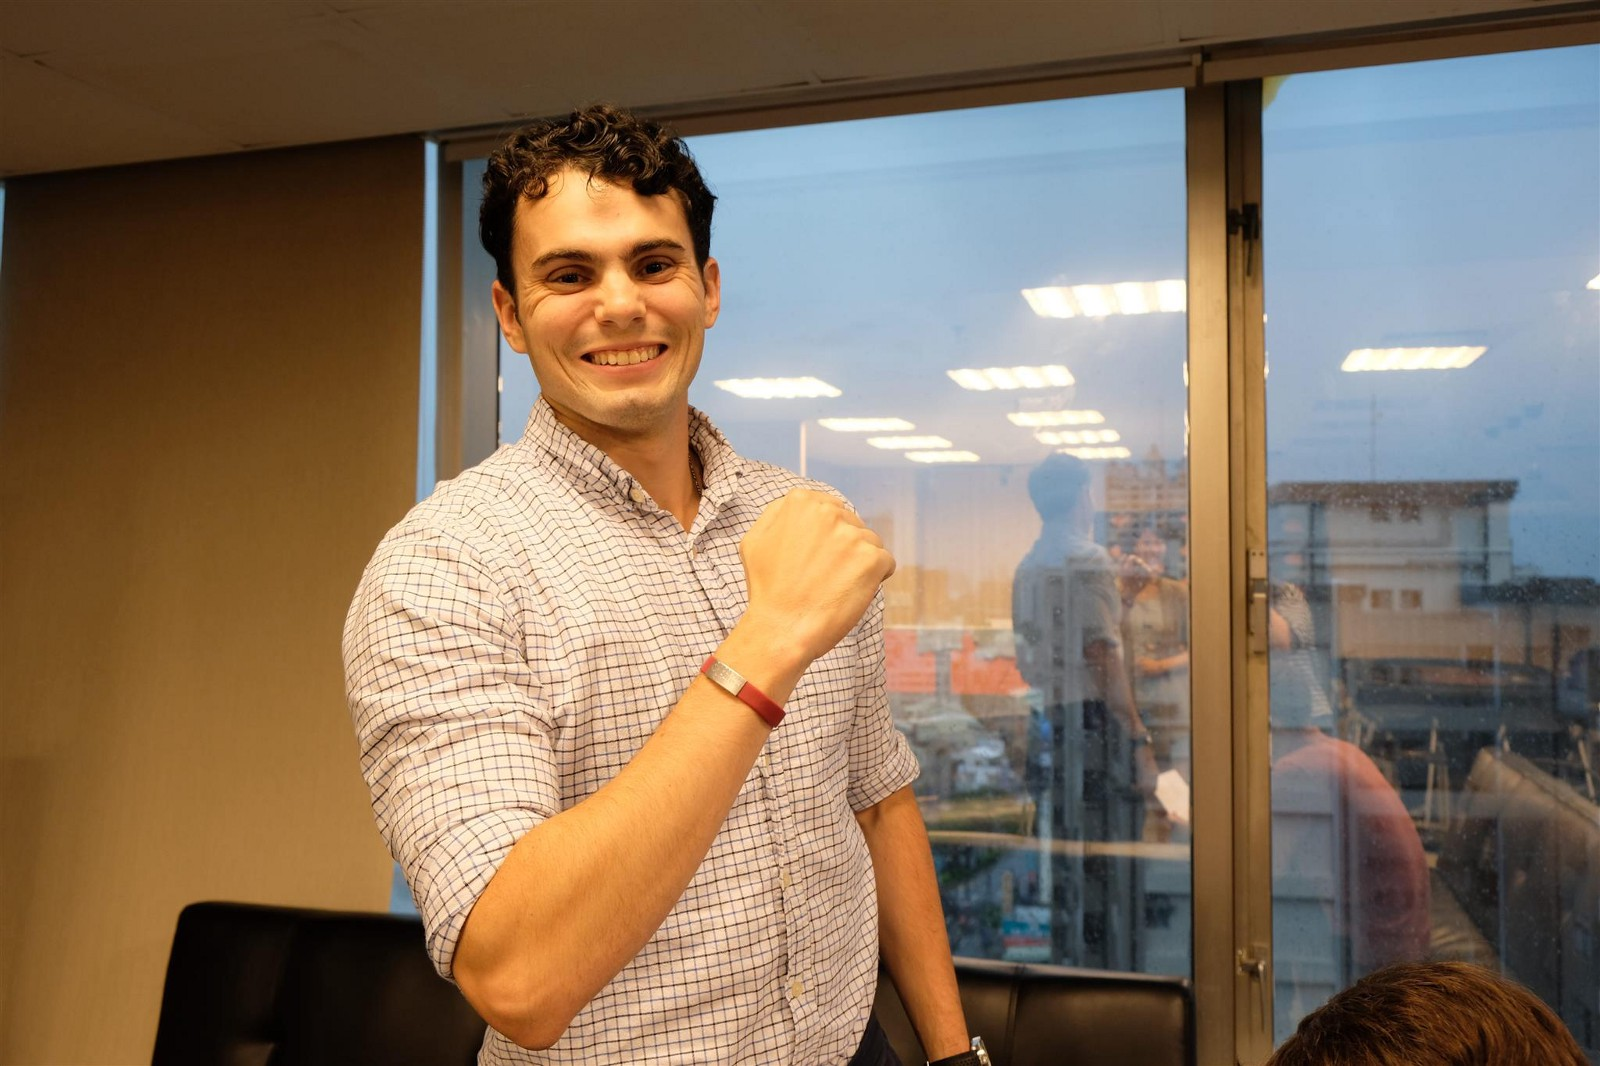 """Joey is showing off his new medical alert bracelet, which says """"食物過敏,"""" or """"Food Allergy"""" in Mandarin."""